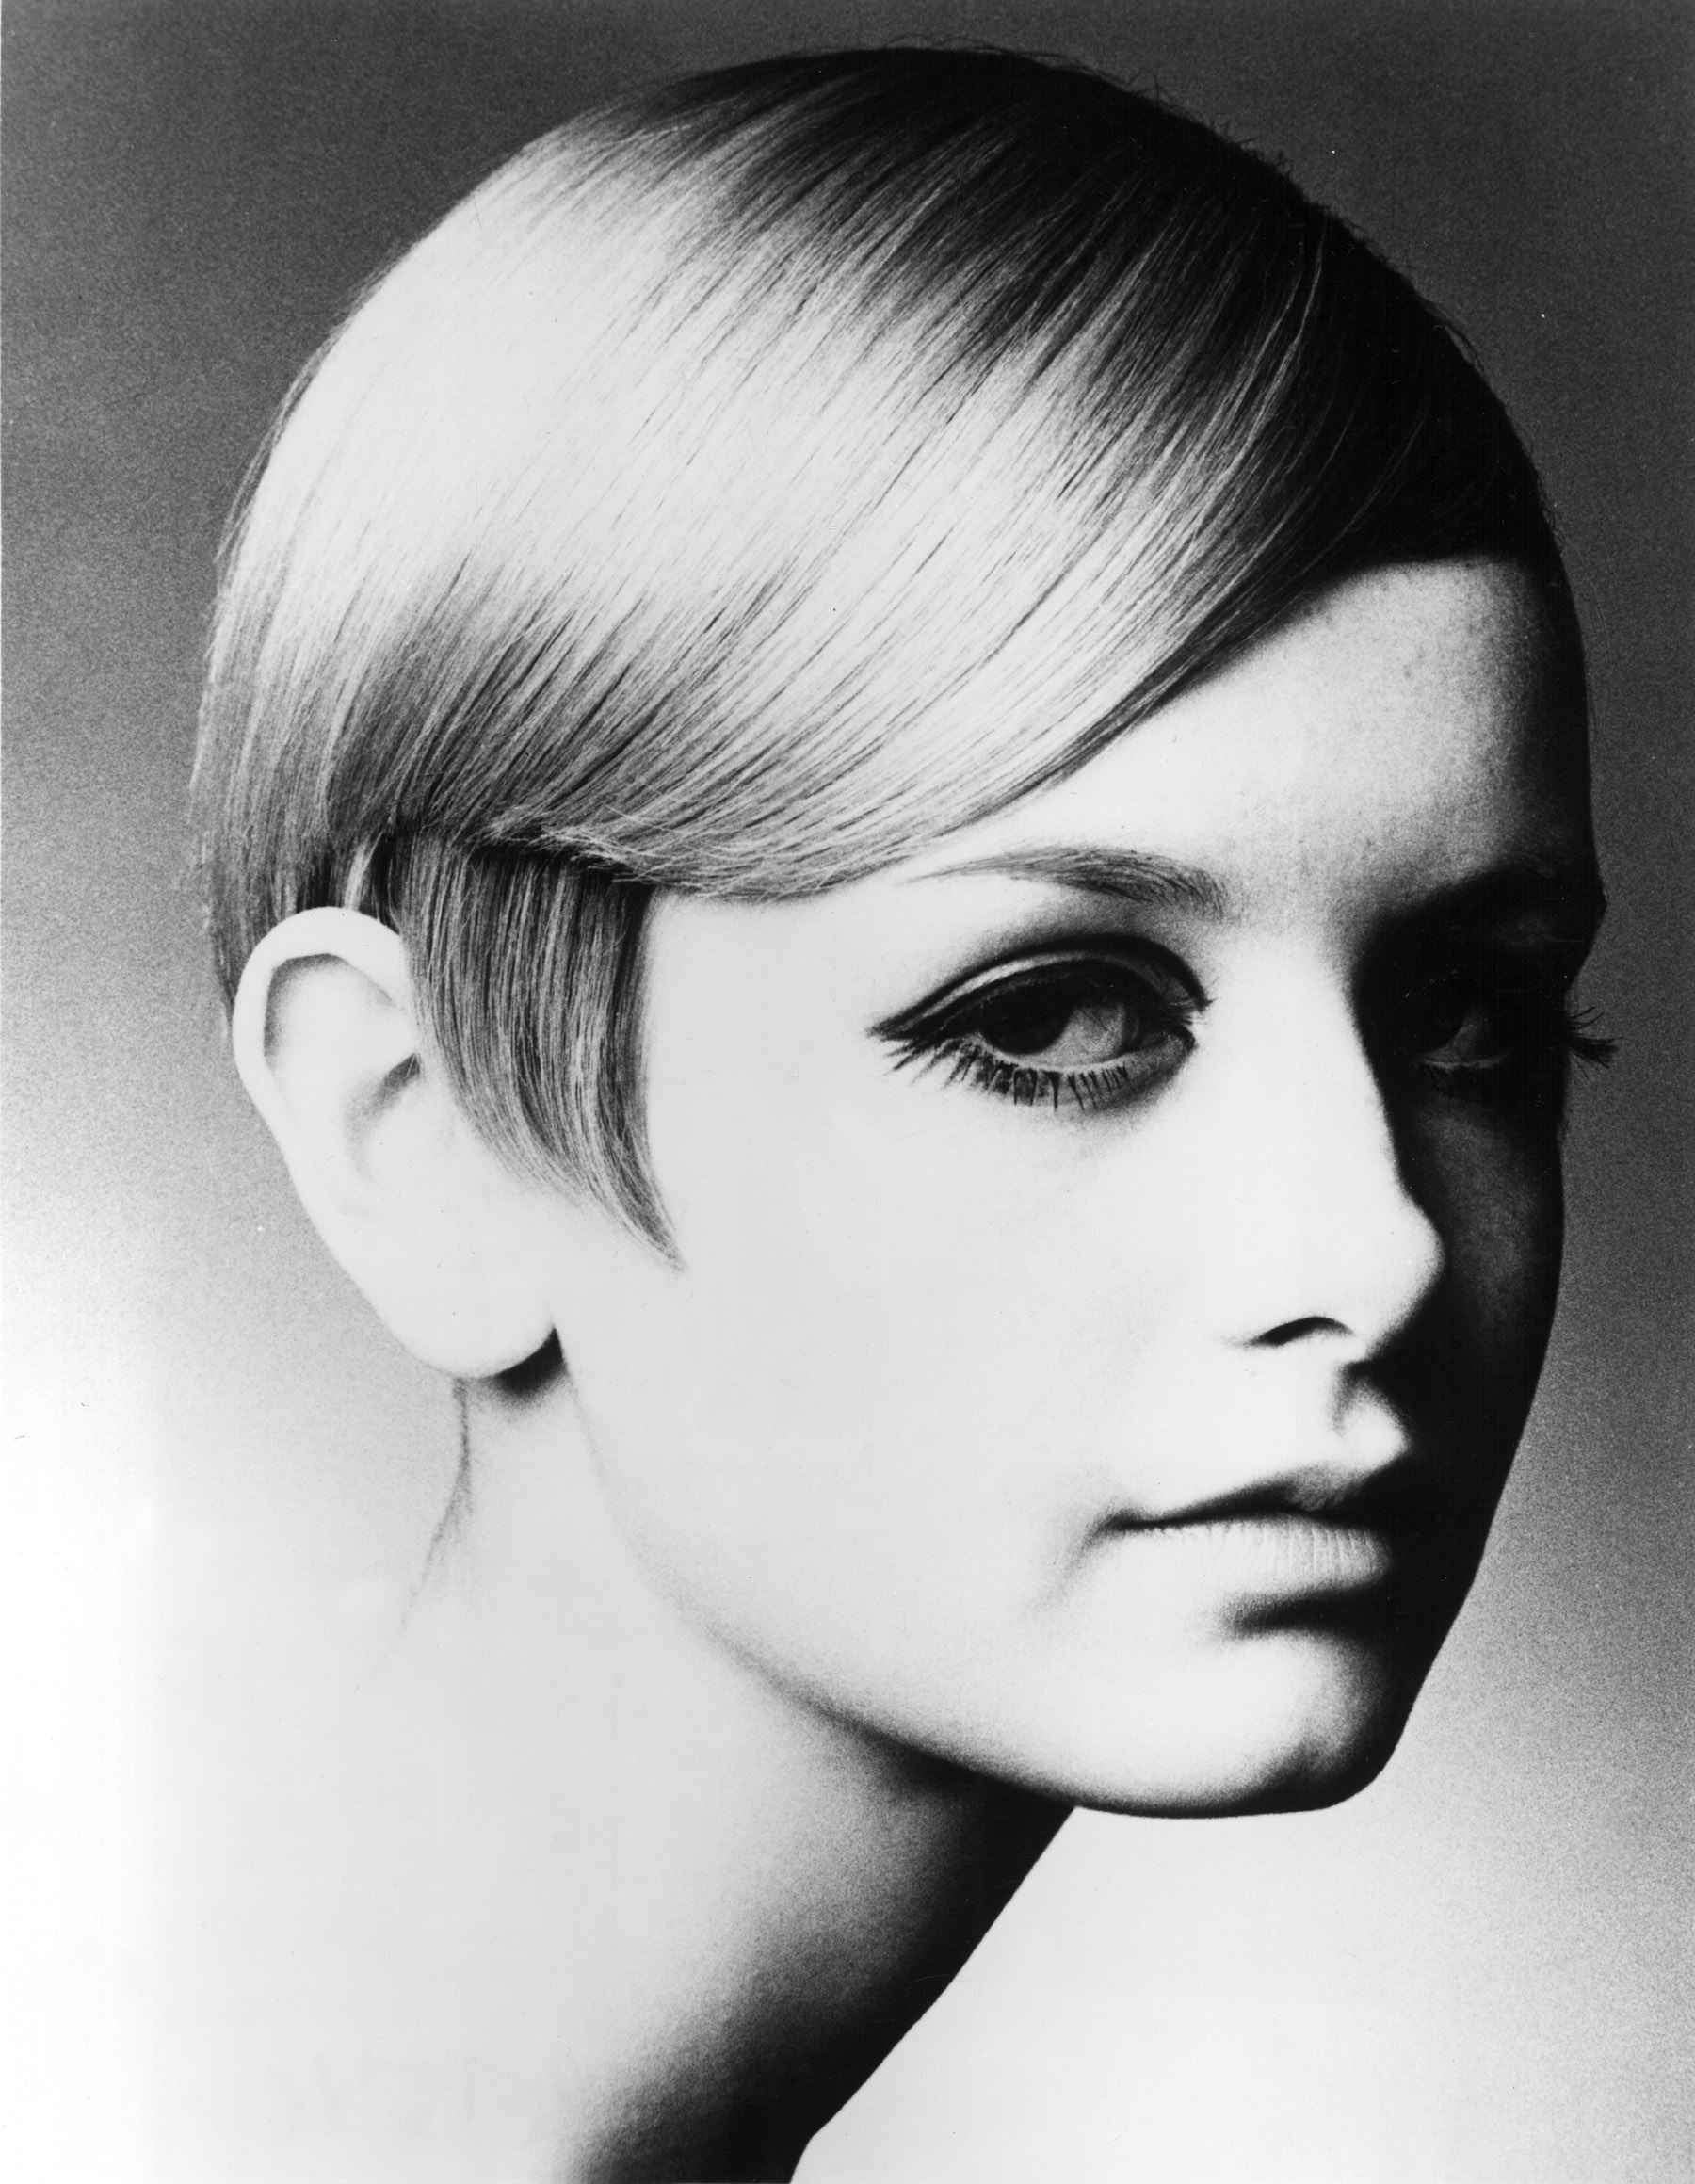 haircut places for twiggy photo 37 of 228 pics wallpaper photo 126434 2319